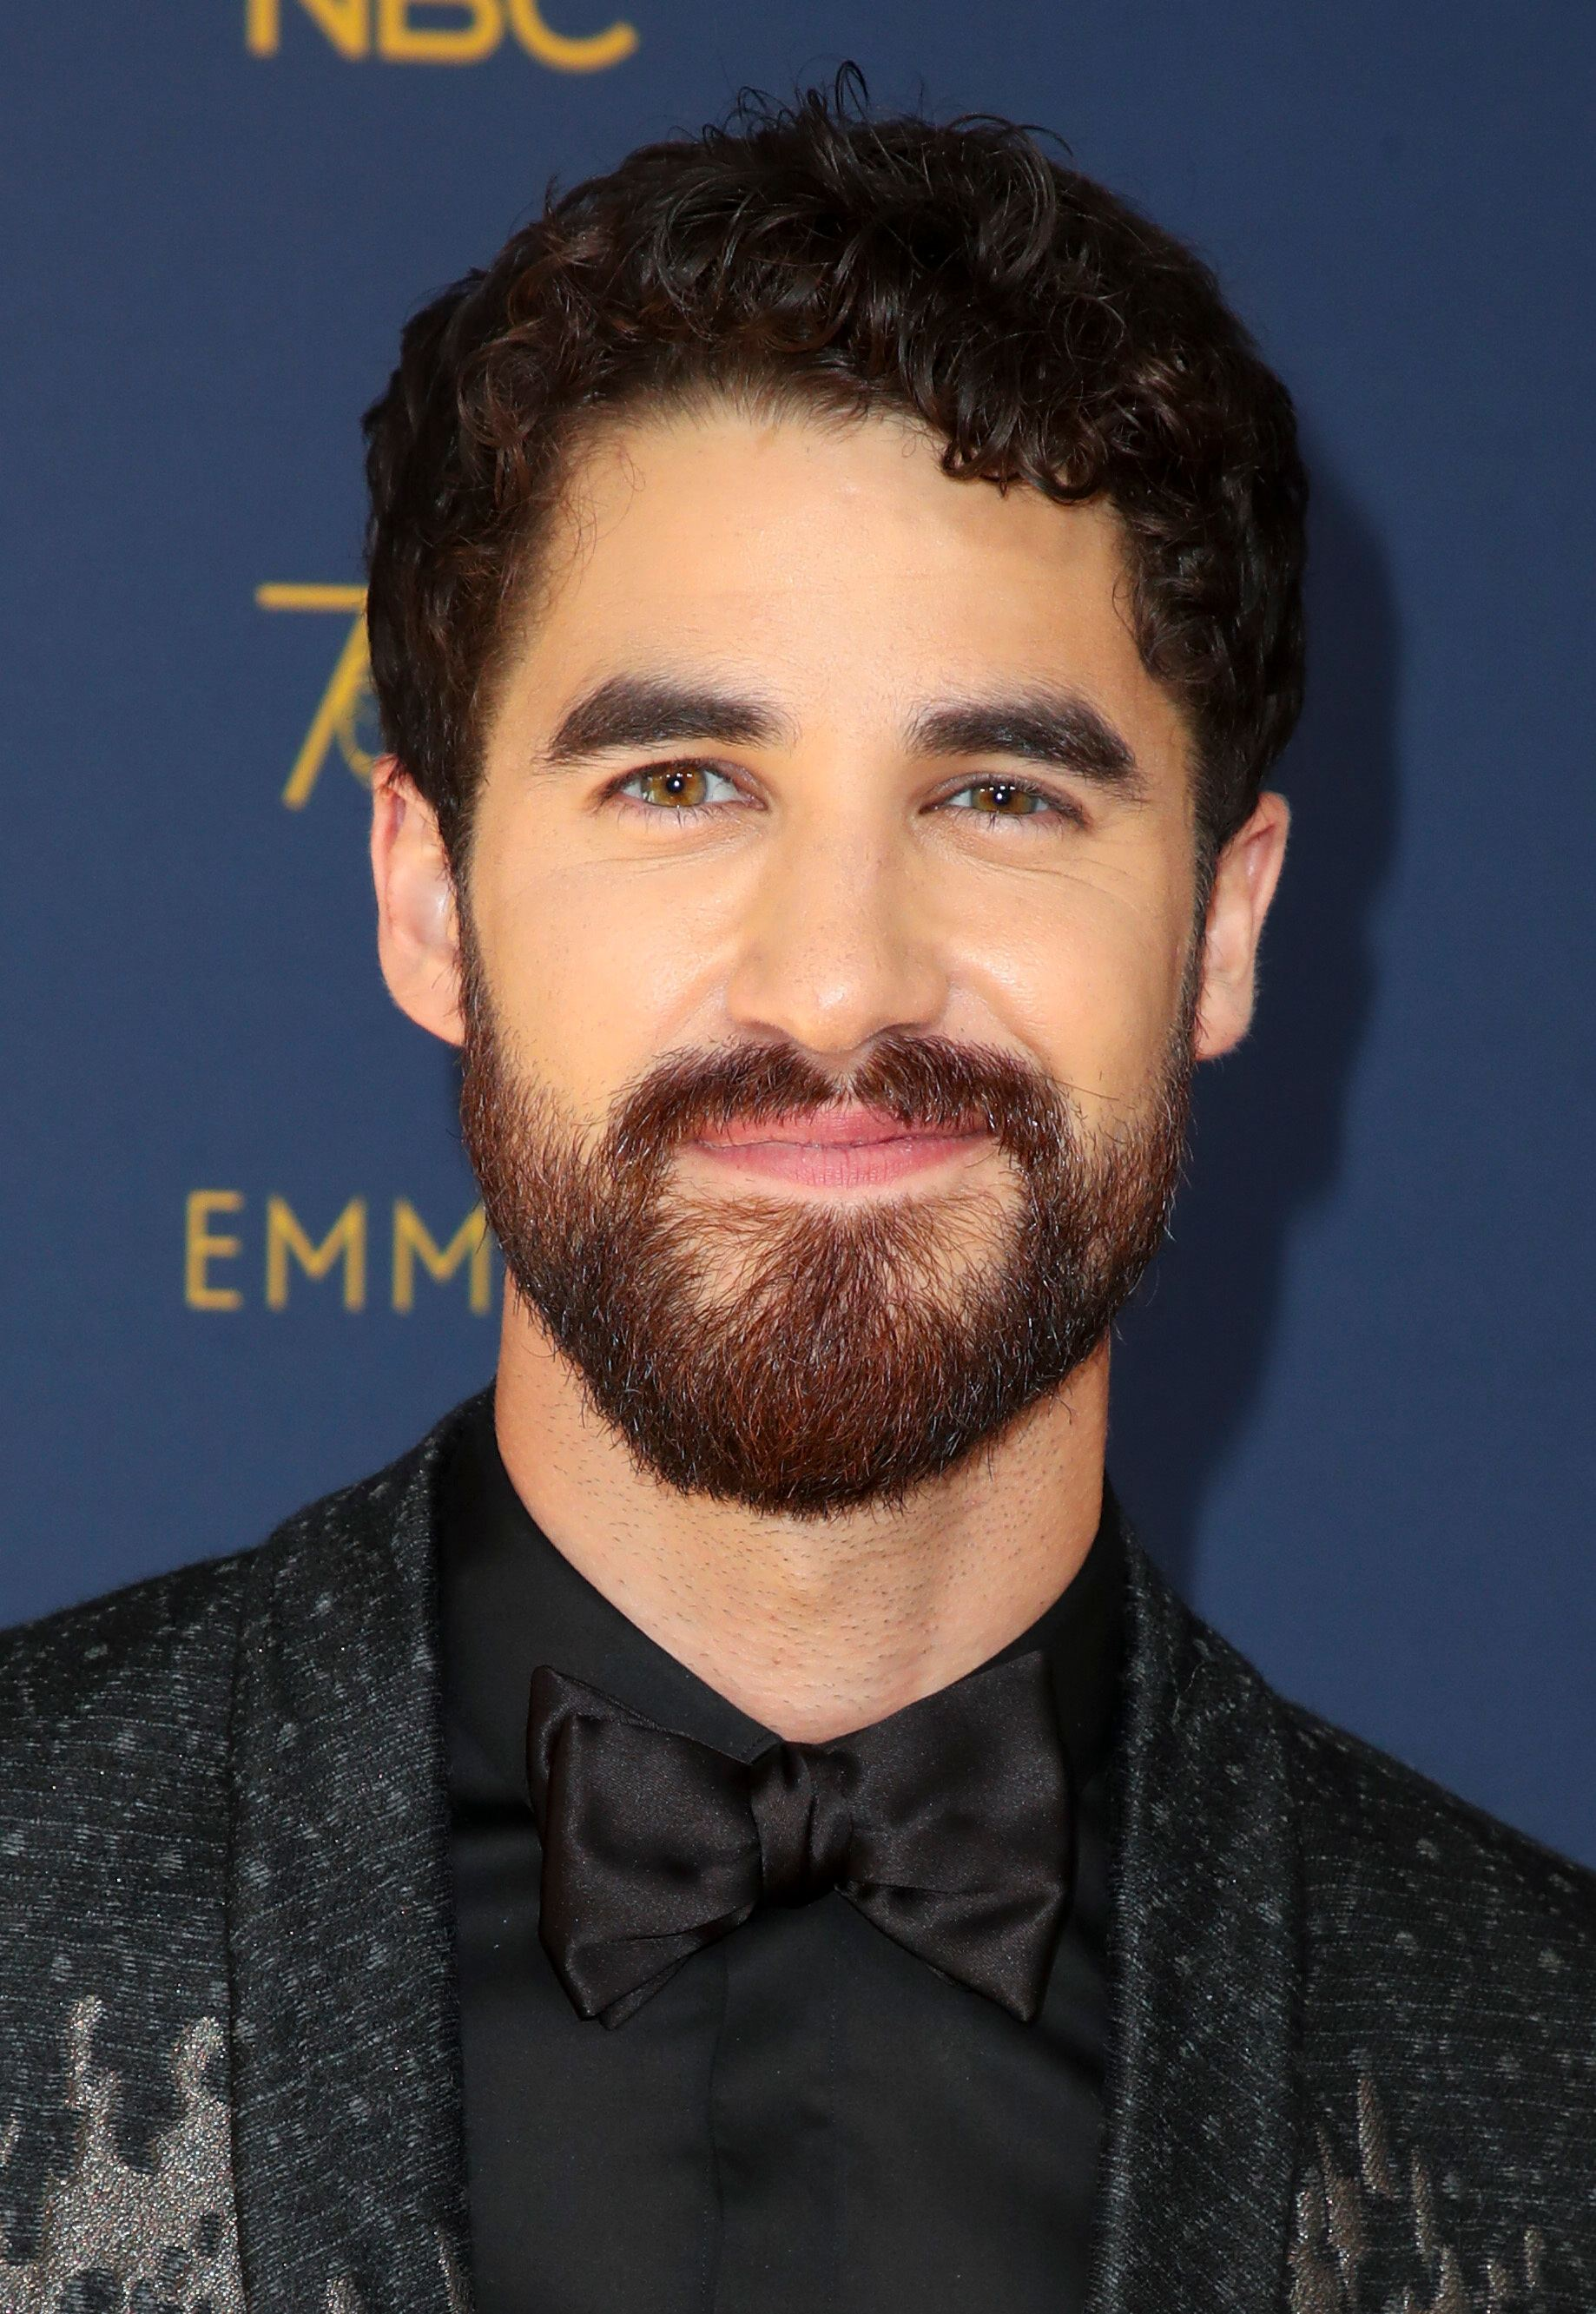 American Crime Story actor Darren Criss at the 2018 Emmy Awards with dark curly hair